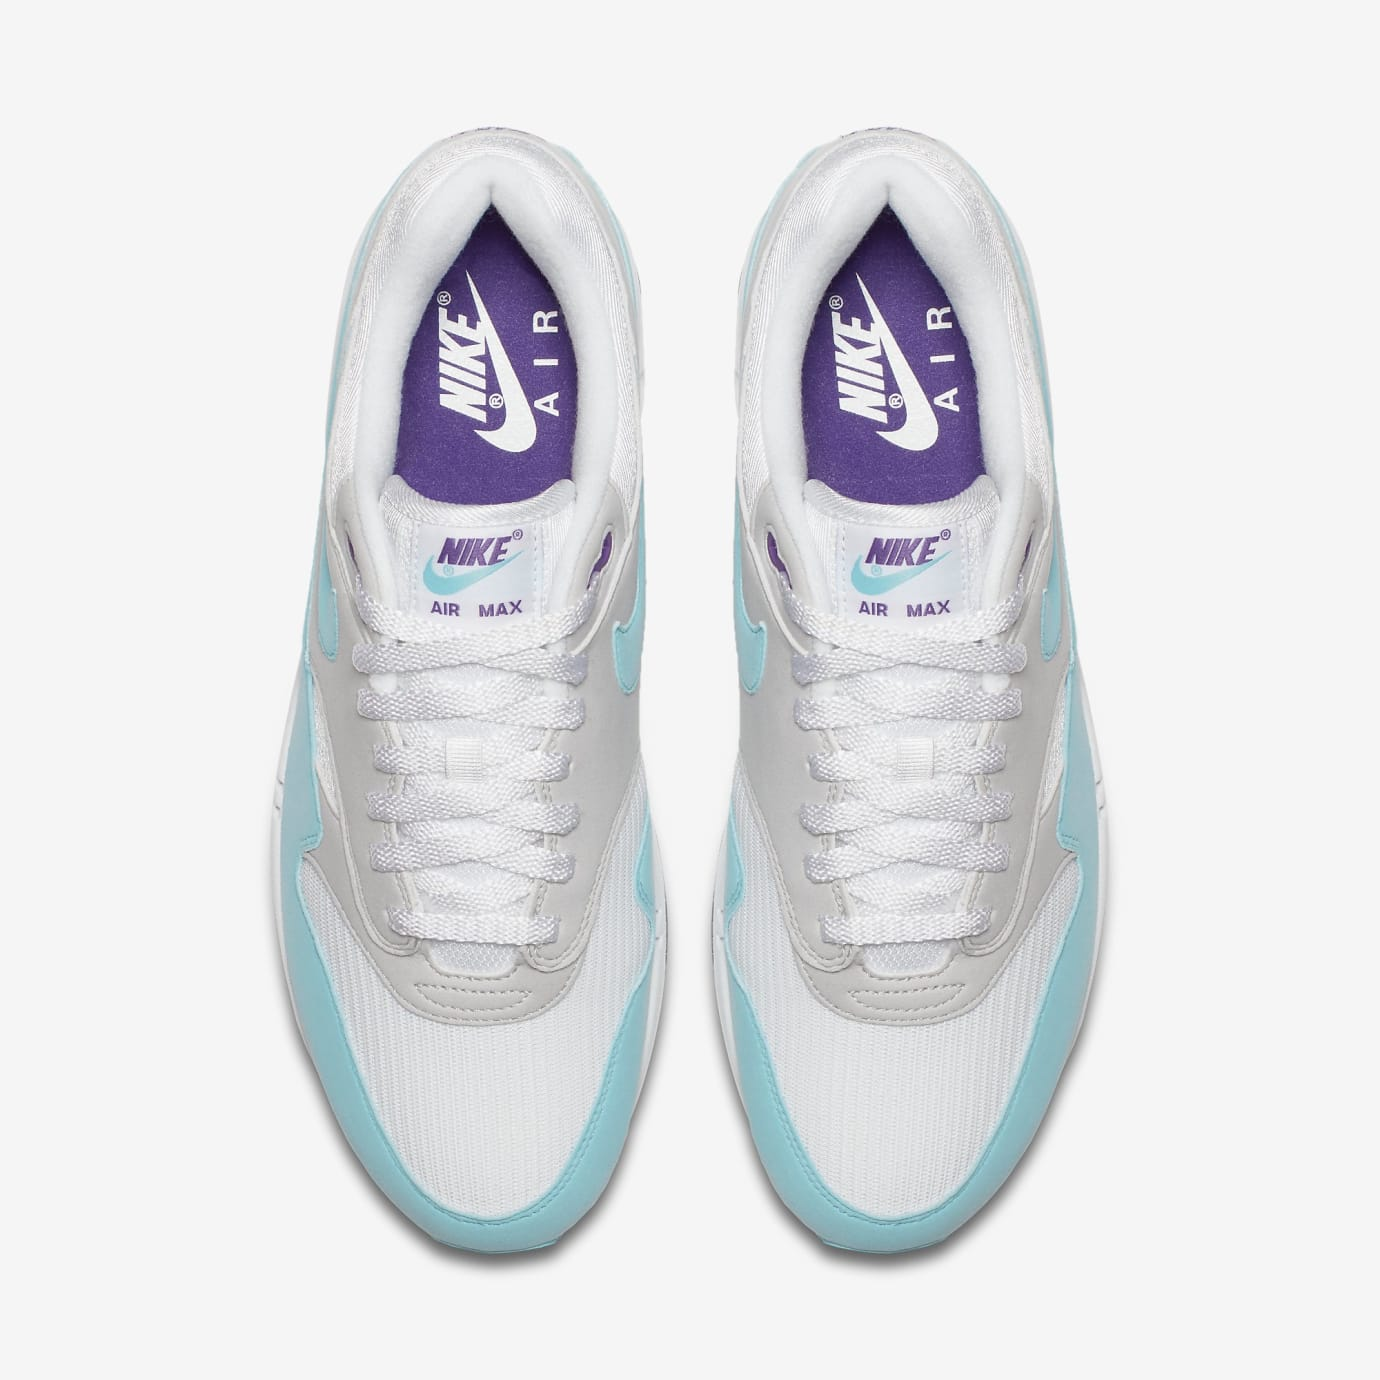 100% authentic 03456 8dab0 Image via Nike Nike Air Max 1 Anniversary  Aqua  908375-105 (Top)